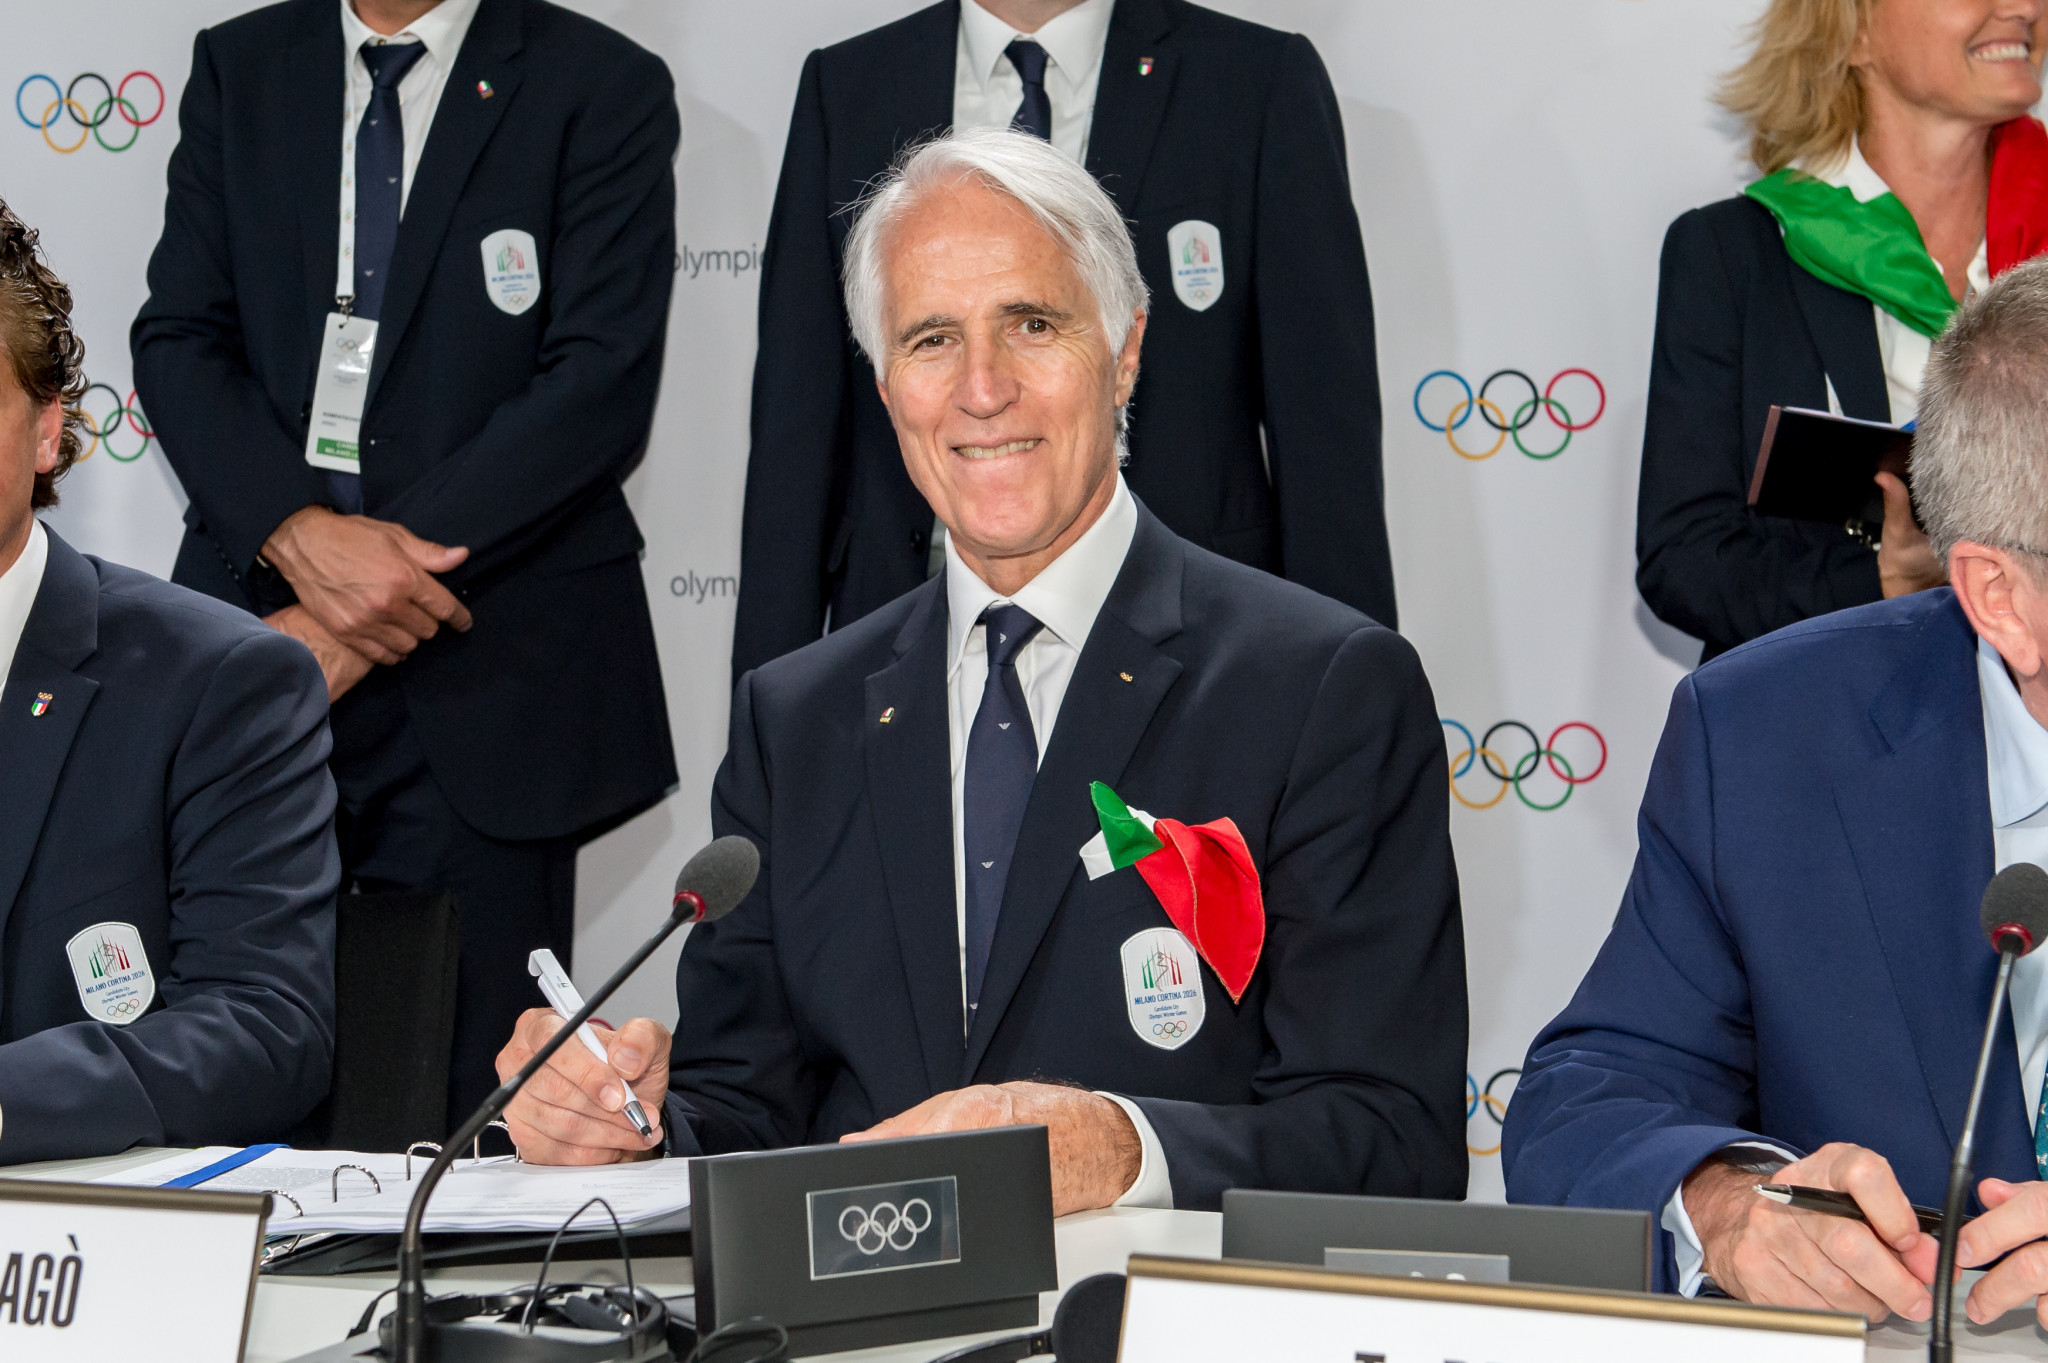 """CONI President Malagò warns risk of Italian flag and anthem ban at Tokyo 2020 is """"very high"""""""